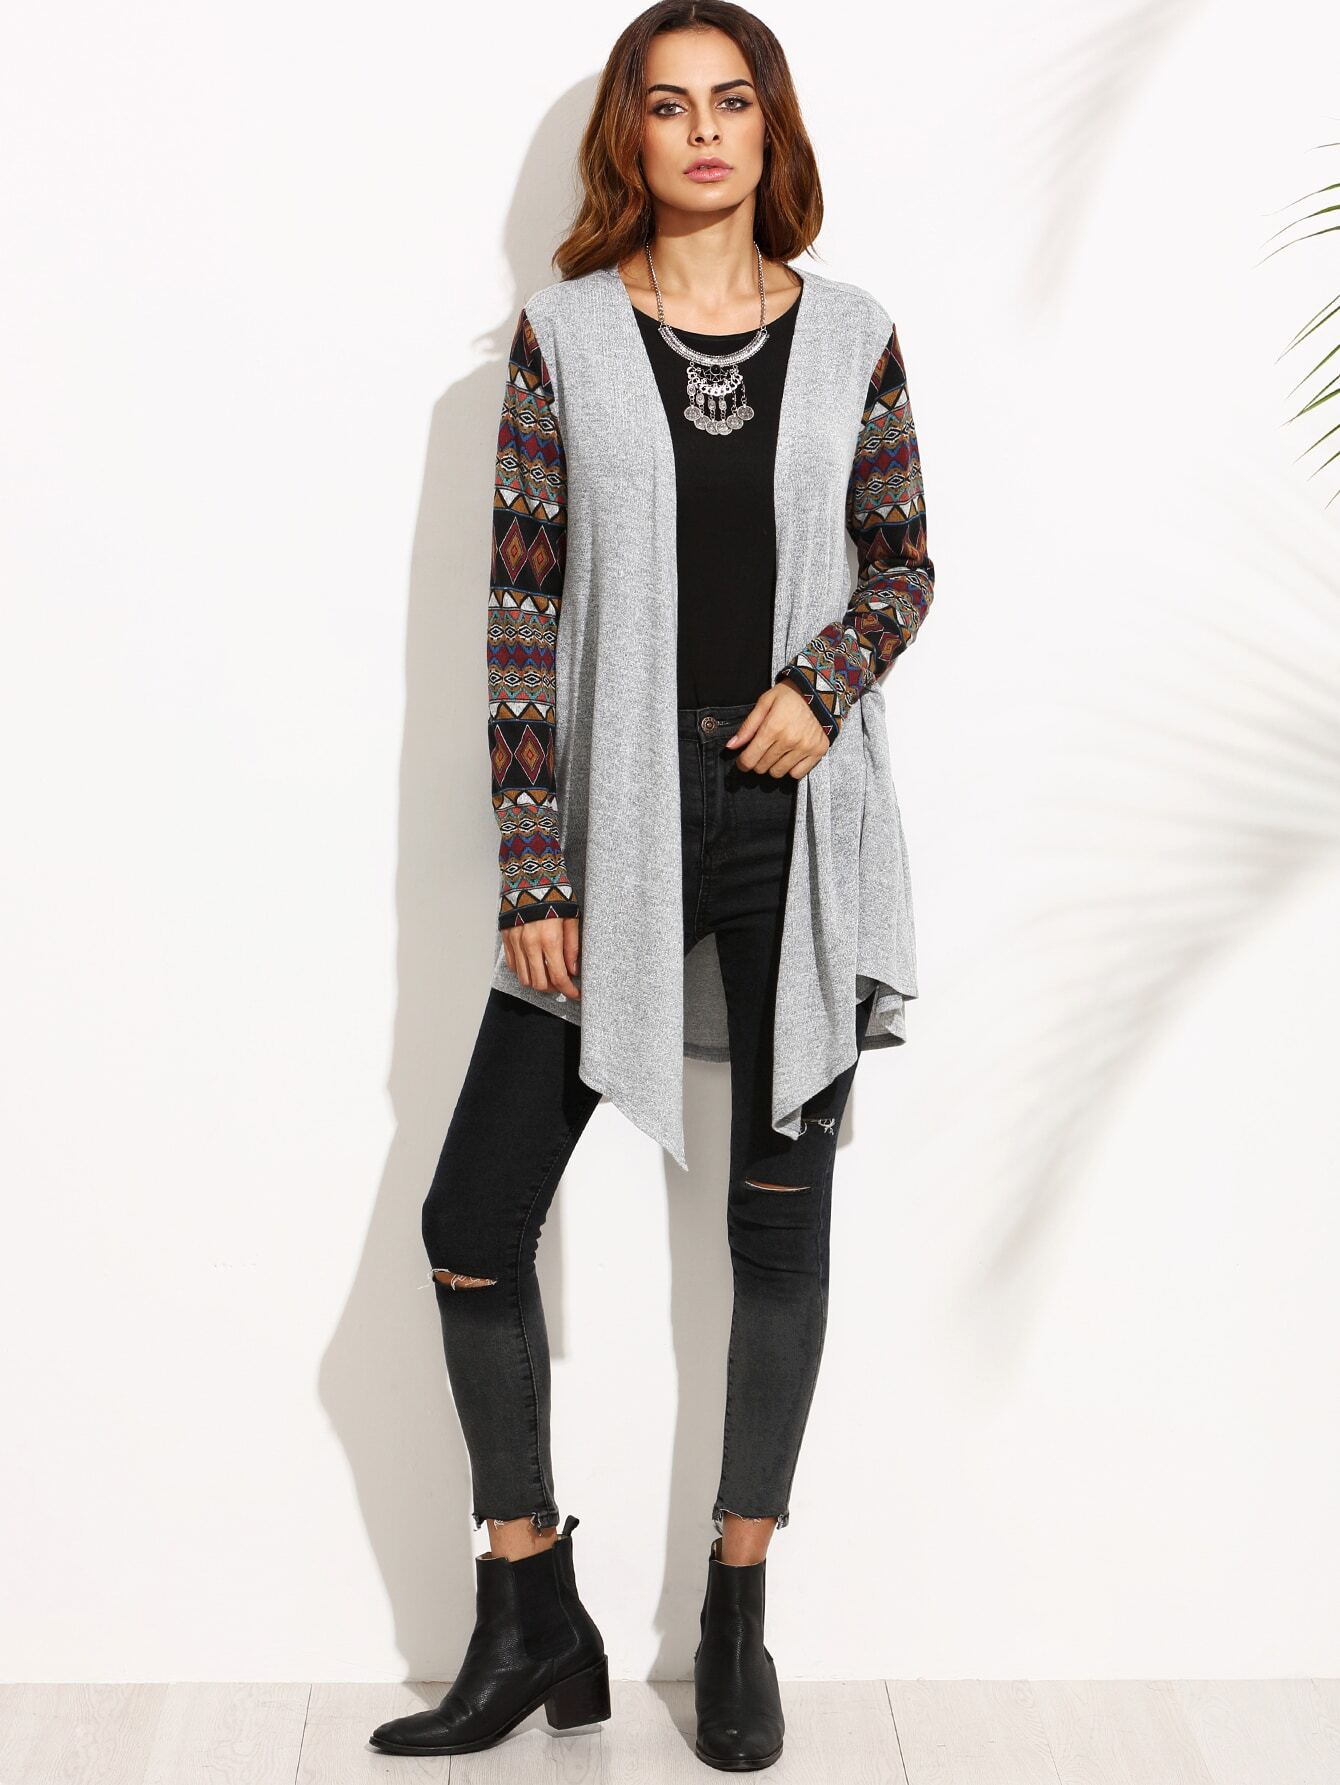 Grey Marled Knit Tribal Sleeve Waterfall CardiganGrey Marled Knit Tribal Sleeve Waterfall Cardigan<br><br>color: Grey<br>size: S,XS